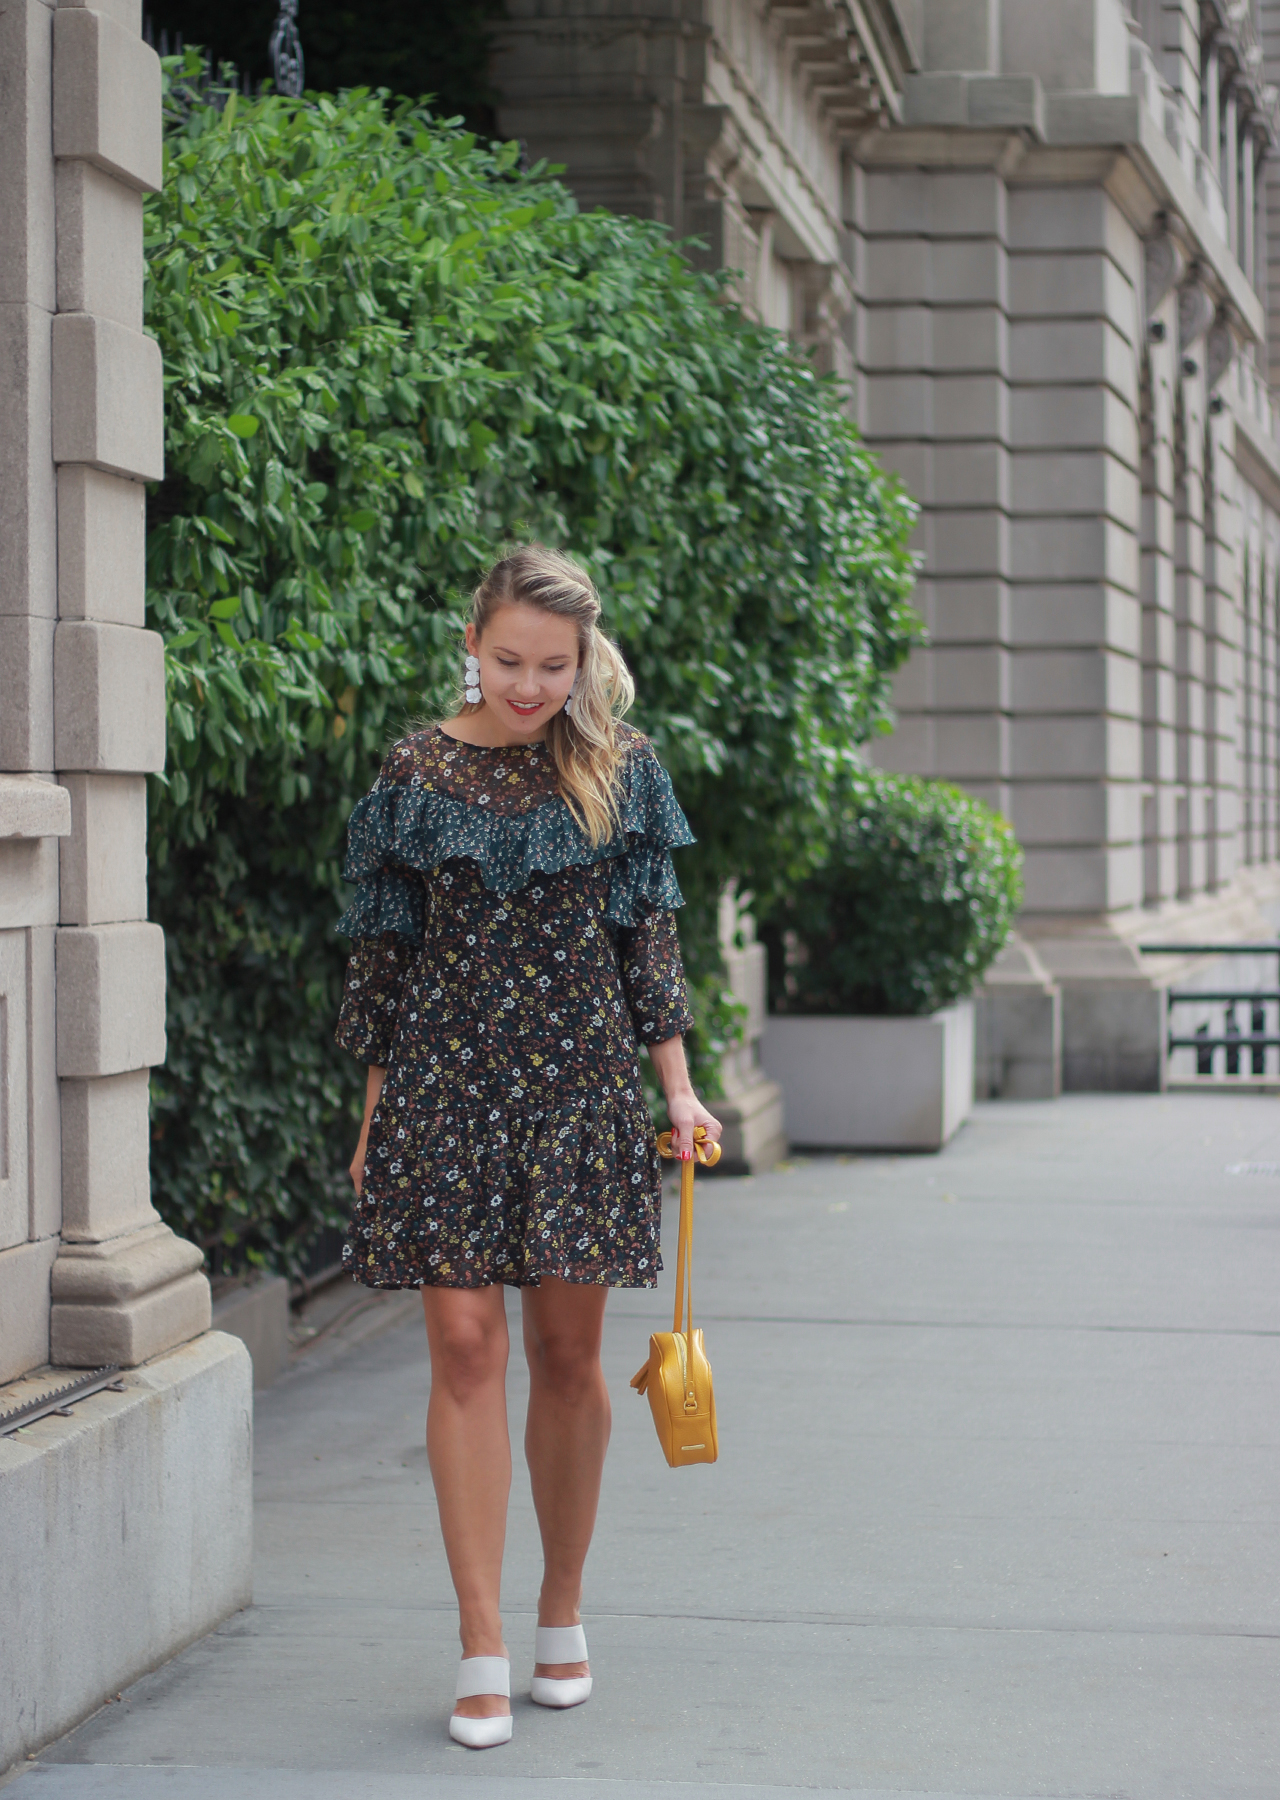 The Steele Maiden: Fall Florals - Ruffle Dress and White Heels